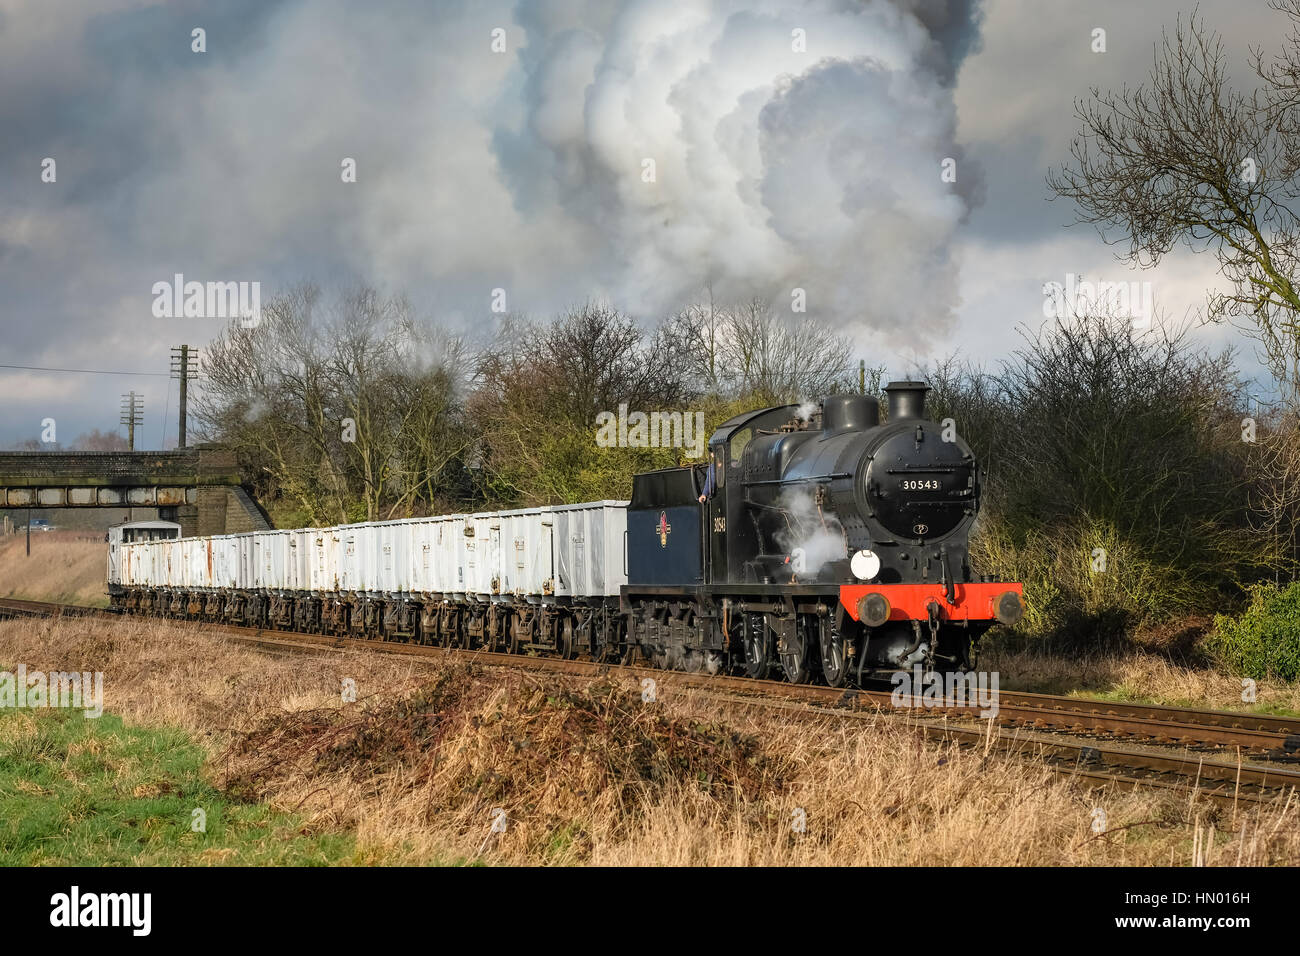 Southern Q Class 0-6-0 No. 30543 leaving Loughborough on the Great Central Railway, February 2017 - Stock Image